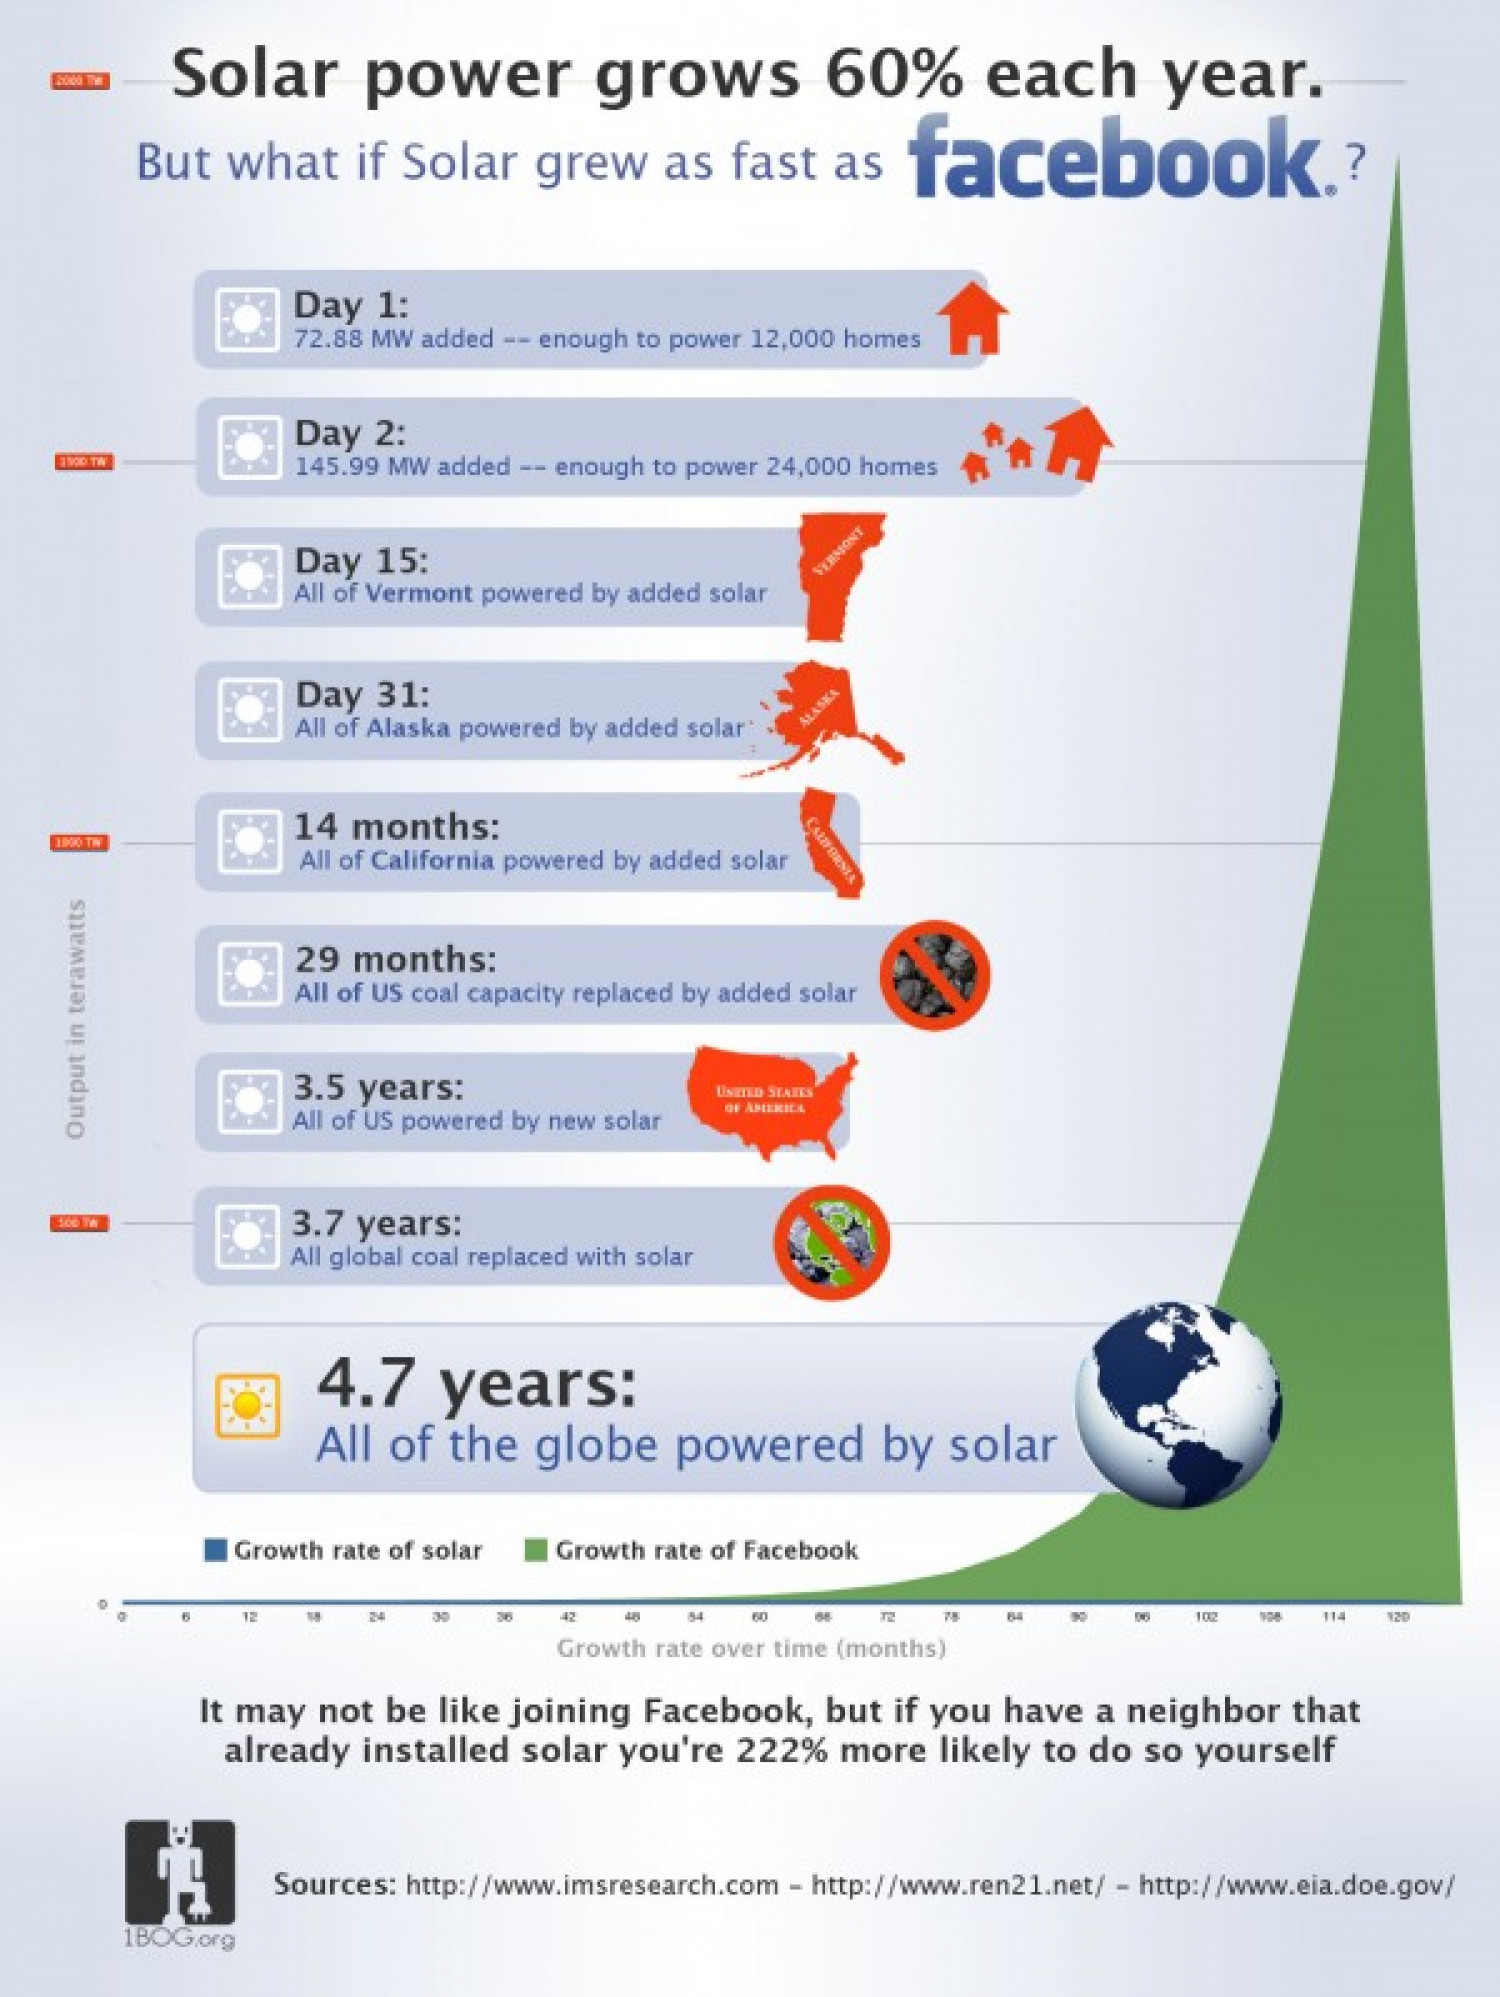 What if Solar Power Grew as Fast as Facebook? Infographic